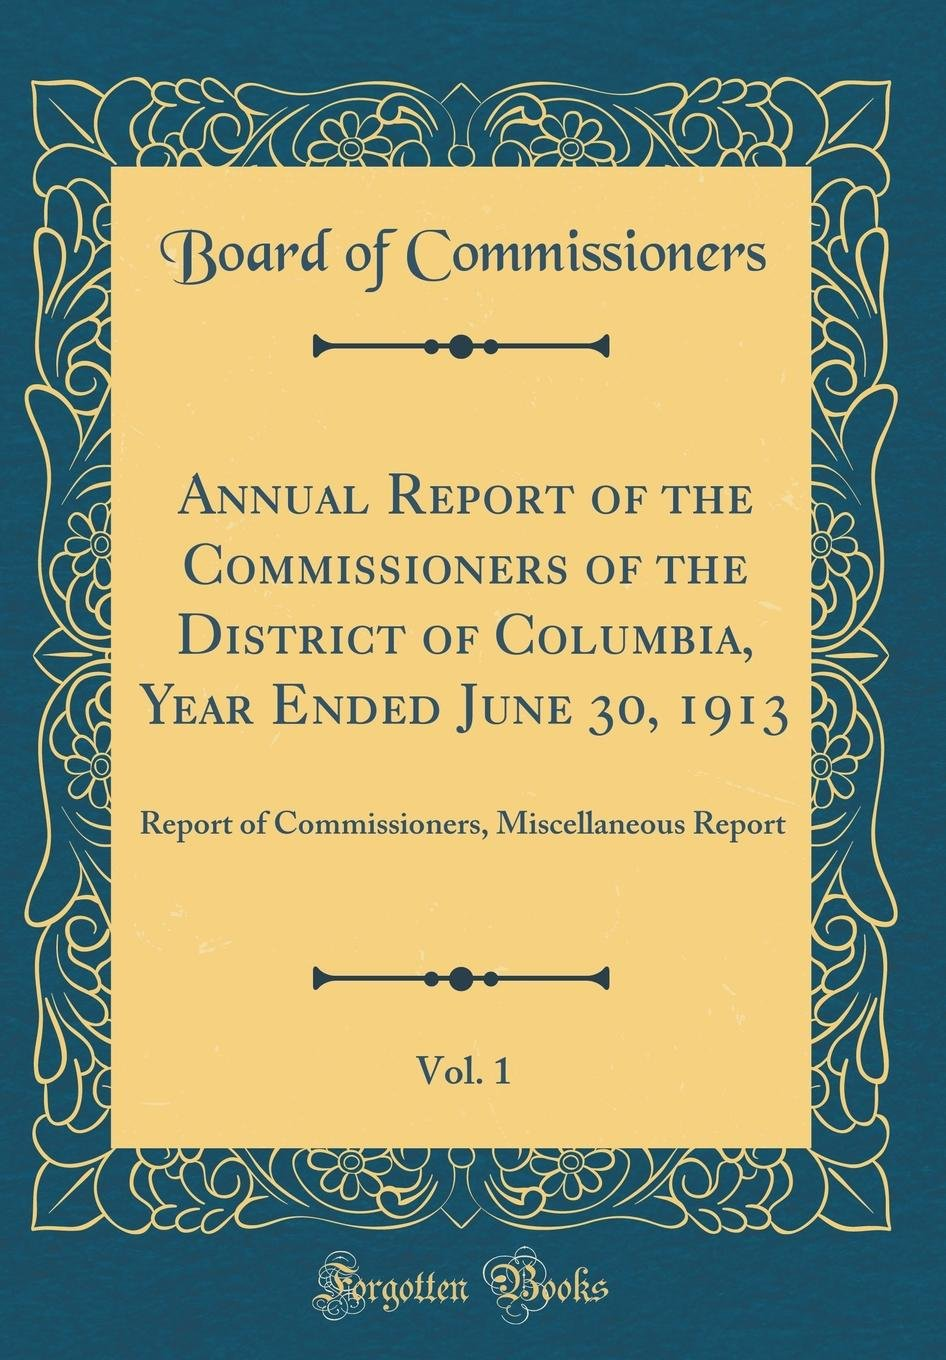 Annual Report of the Commissioners of the District of Columbia, Year Ended June 30, 1913, Vol. 1: Report of Commissioners, Miscellaneous Report (Classic Reprint) pdf epub